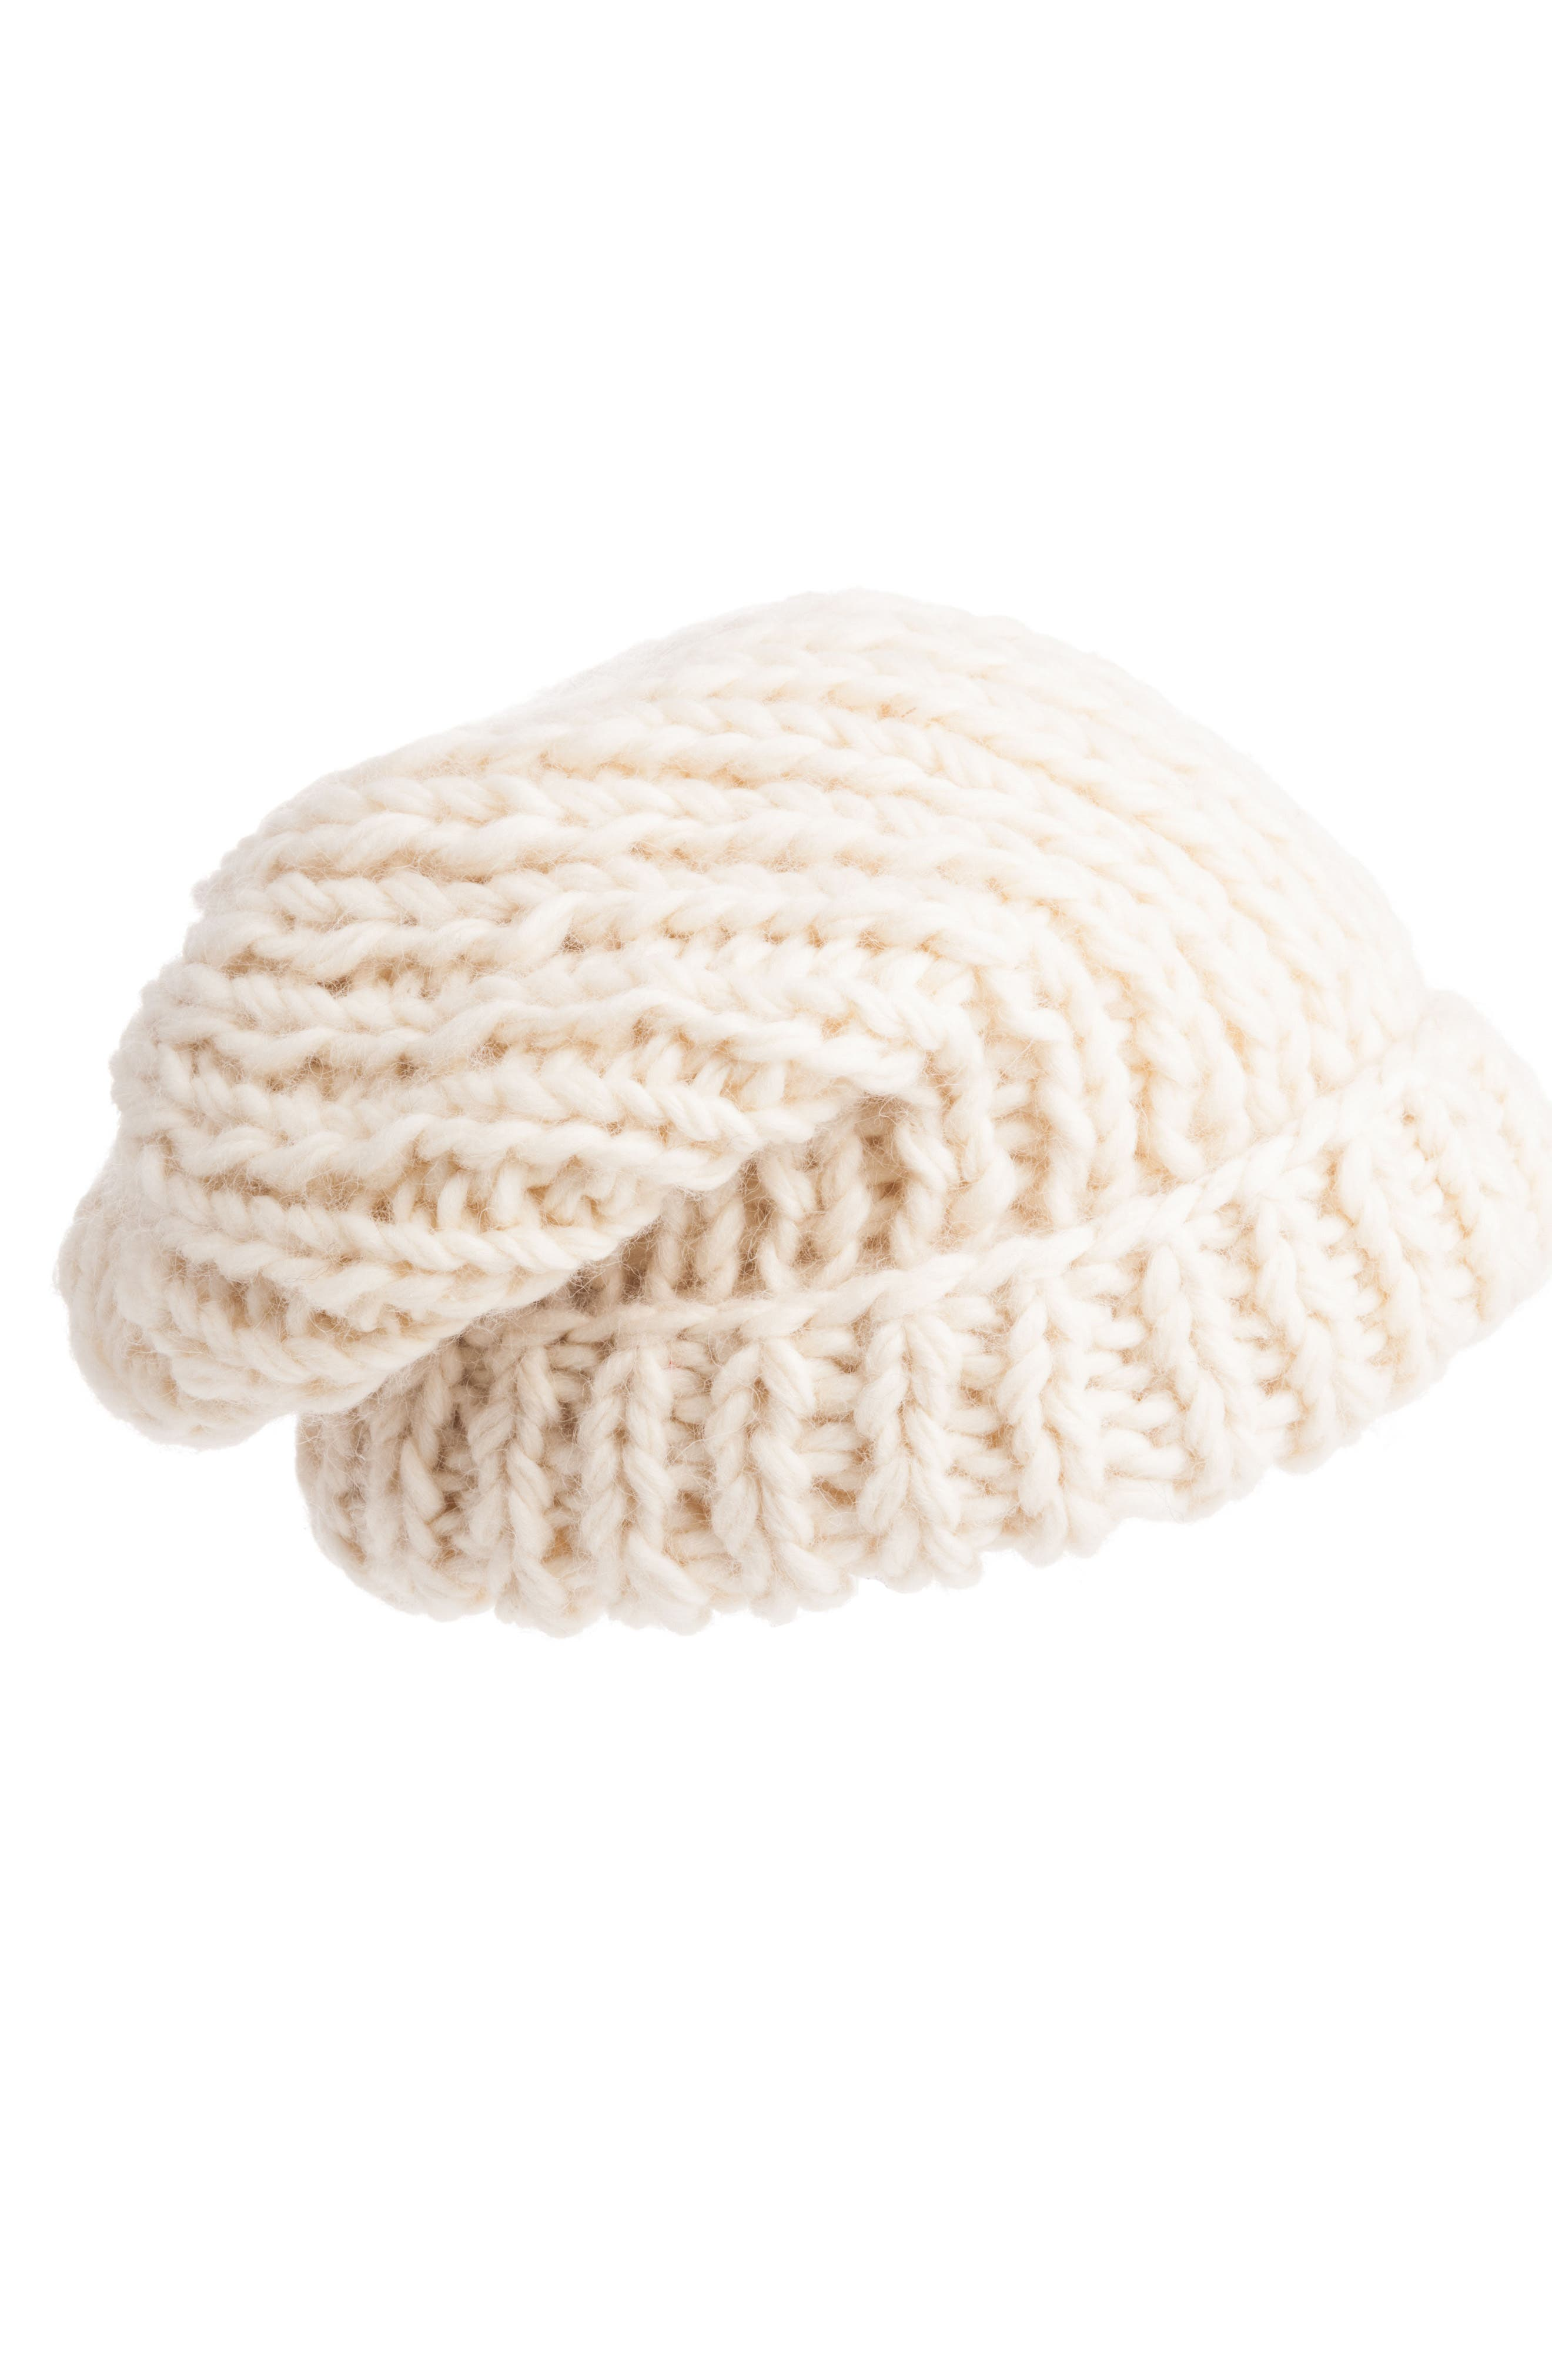 Main Image - Nirvanna Designs Chunky Knit Slouchy Wool Cap